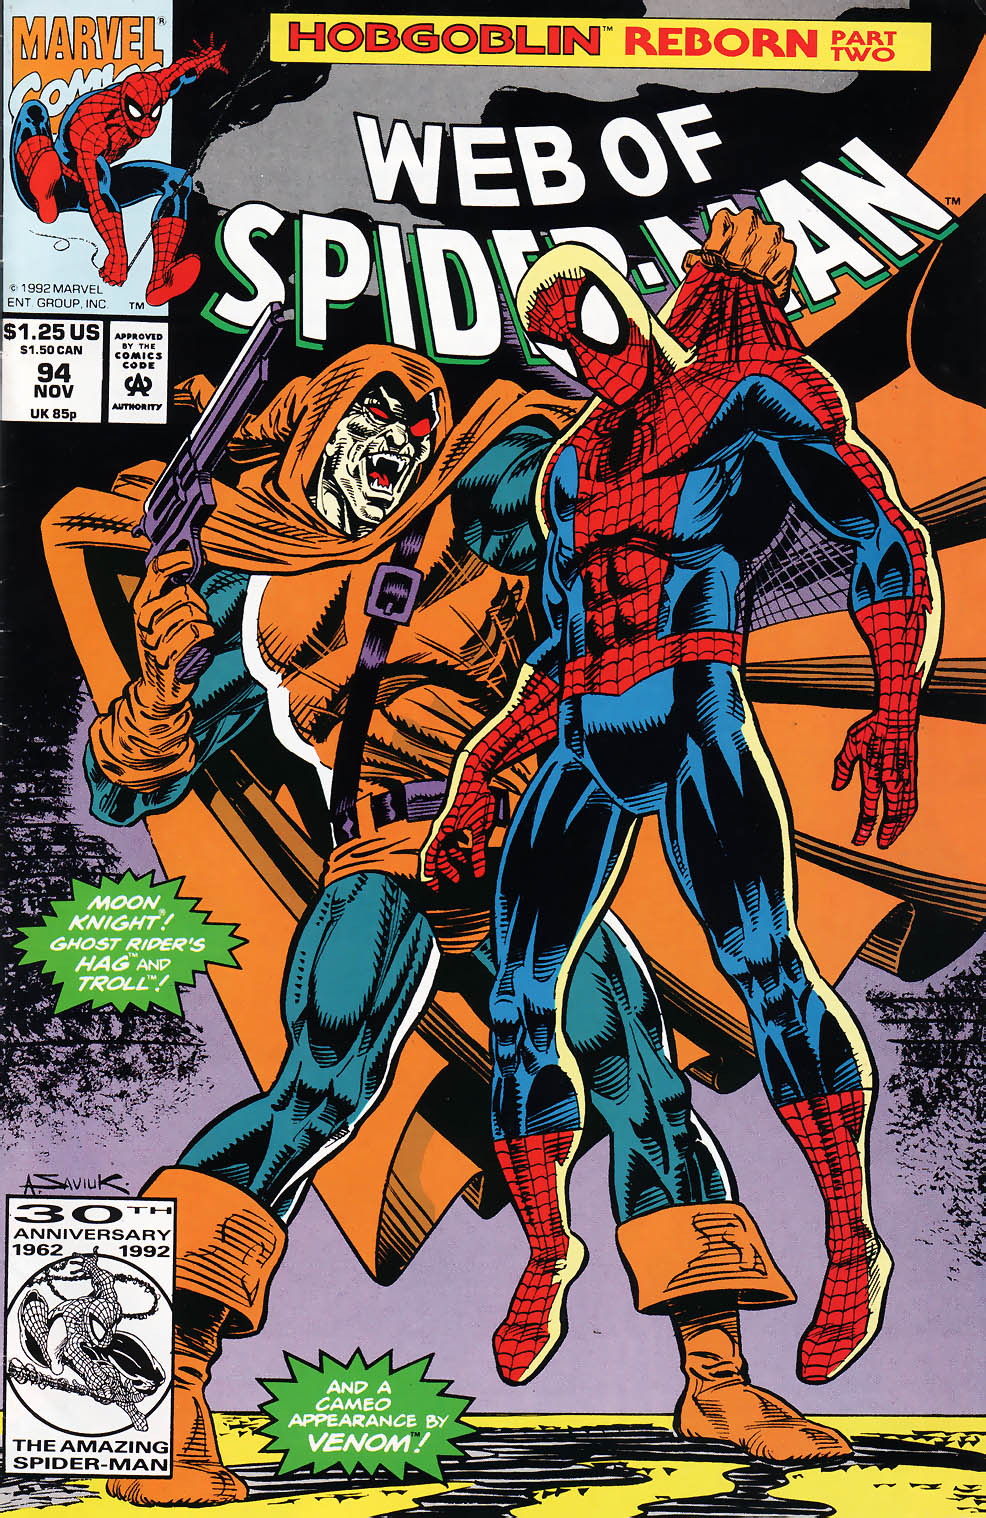 Web of Spider-Man (1985) 94 Page 1